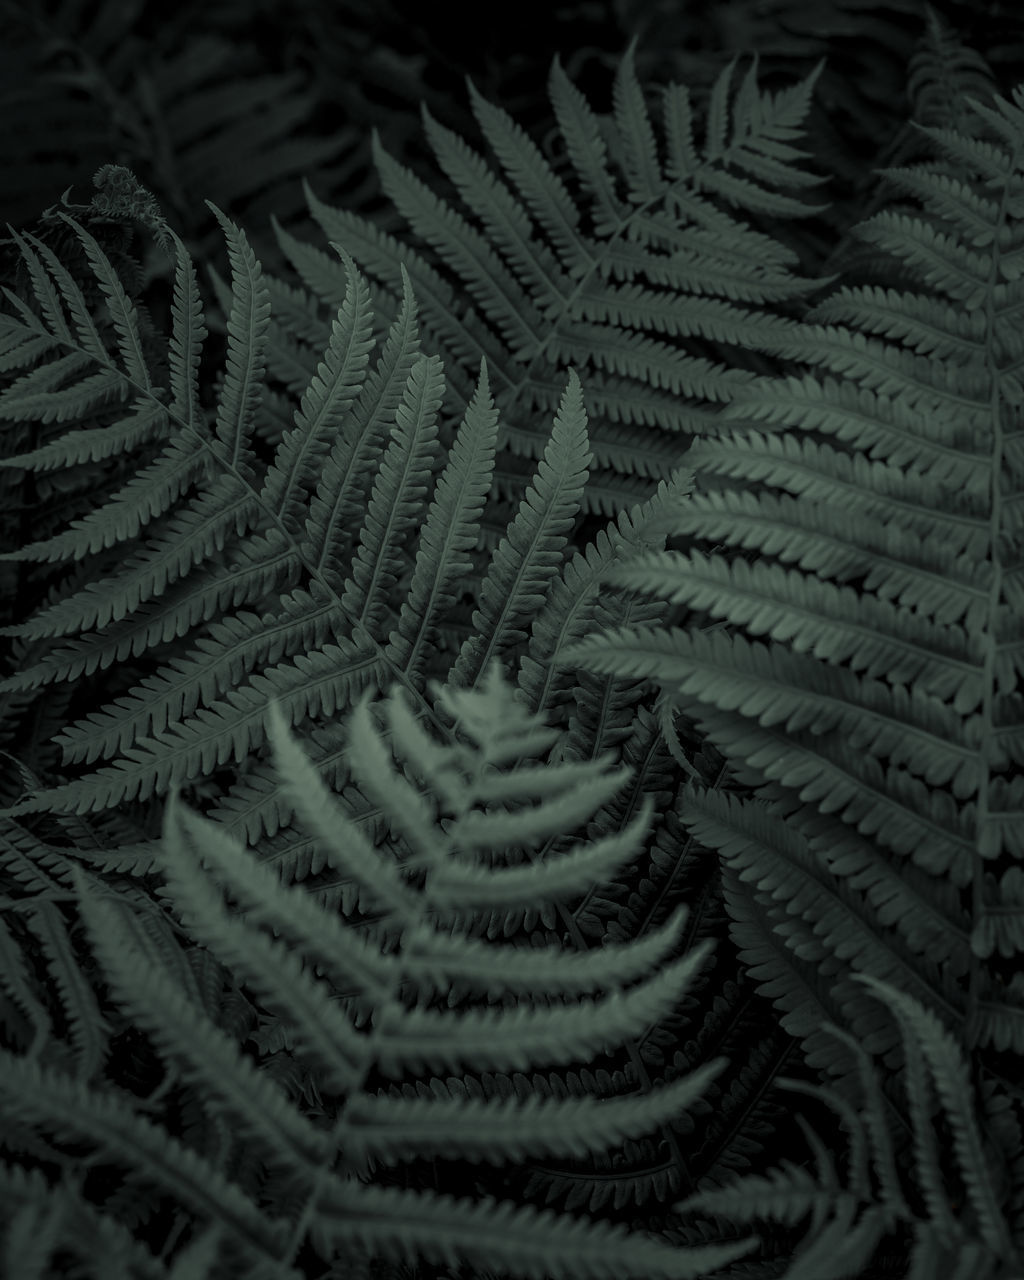 close-up, backgrounds, pattern, no people, full frame, selective focus, fern, high angle view, growth, green color, indoors, textured, natural pattern, still life, textile, plant, day, beauty in nature, leaf, softness